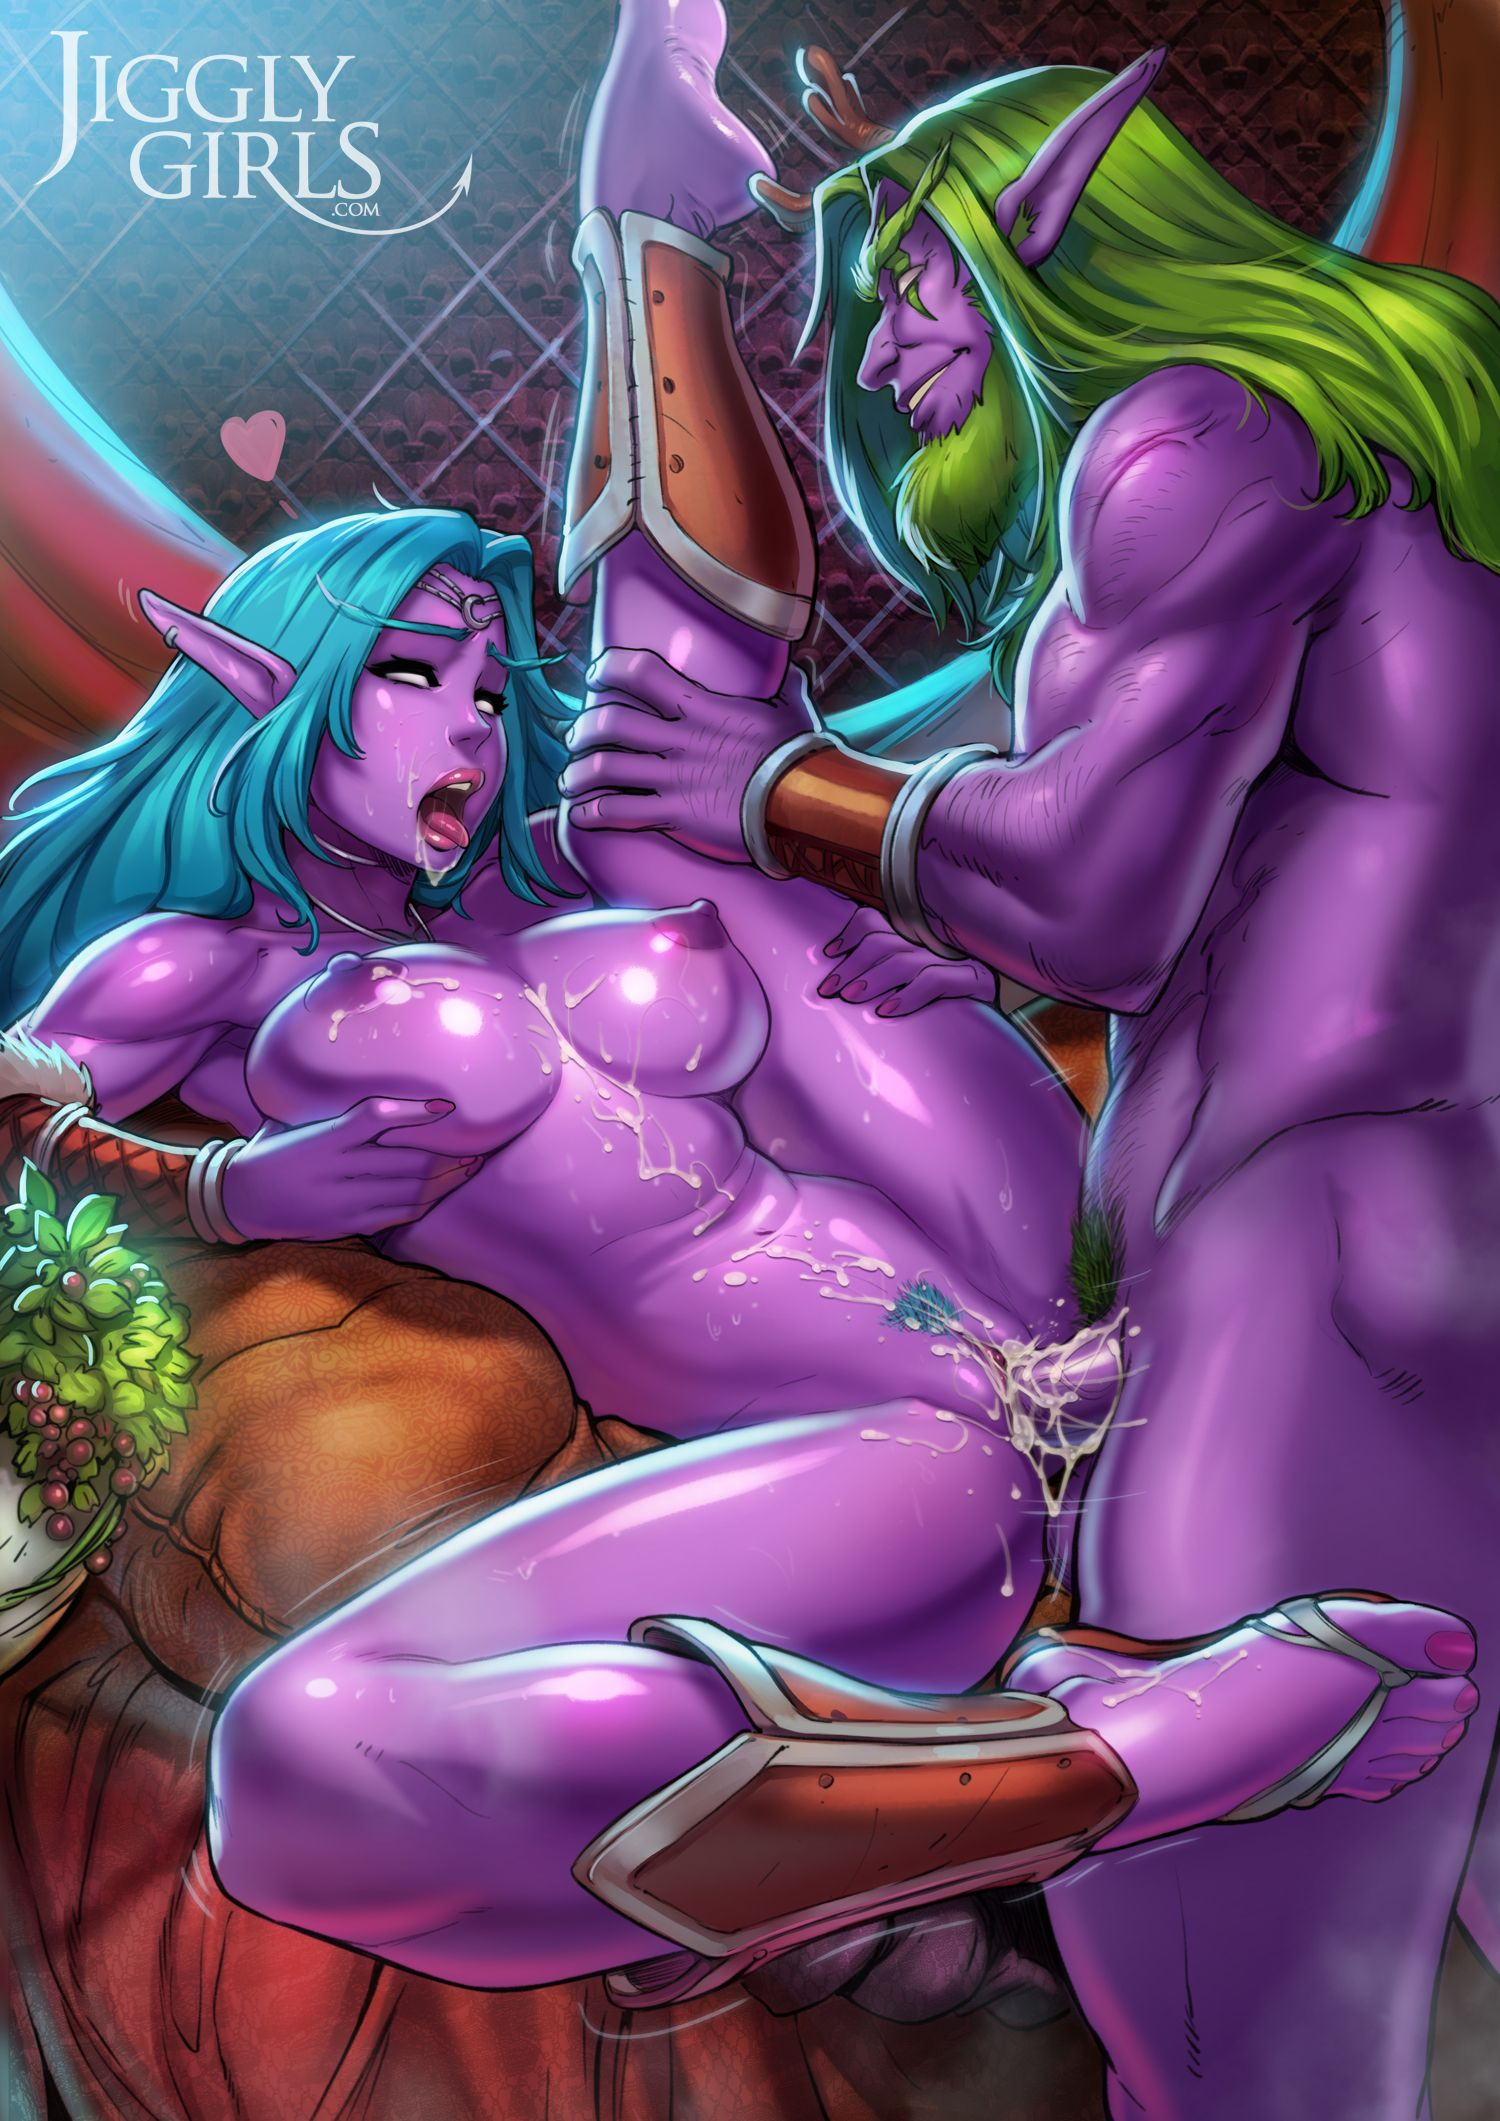 Warcraft hentai photo manipulations hardcore video